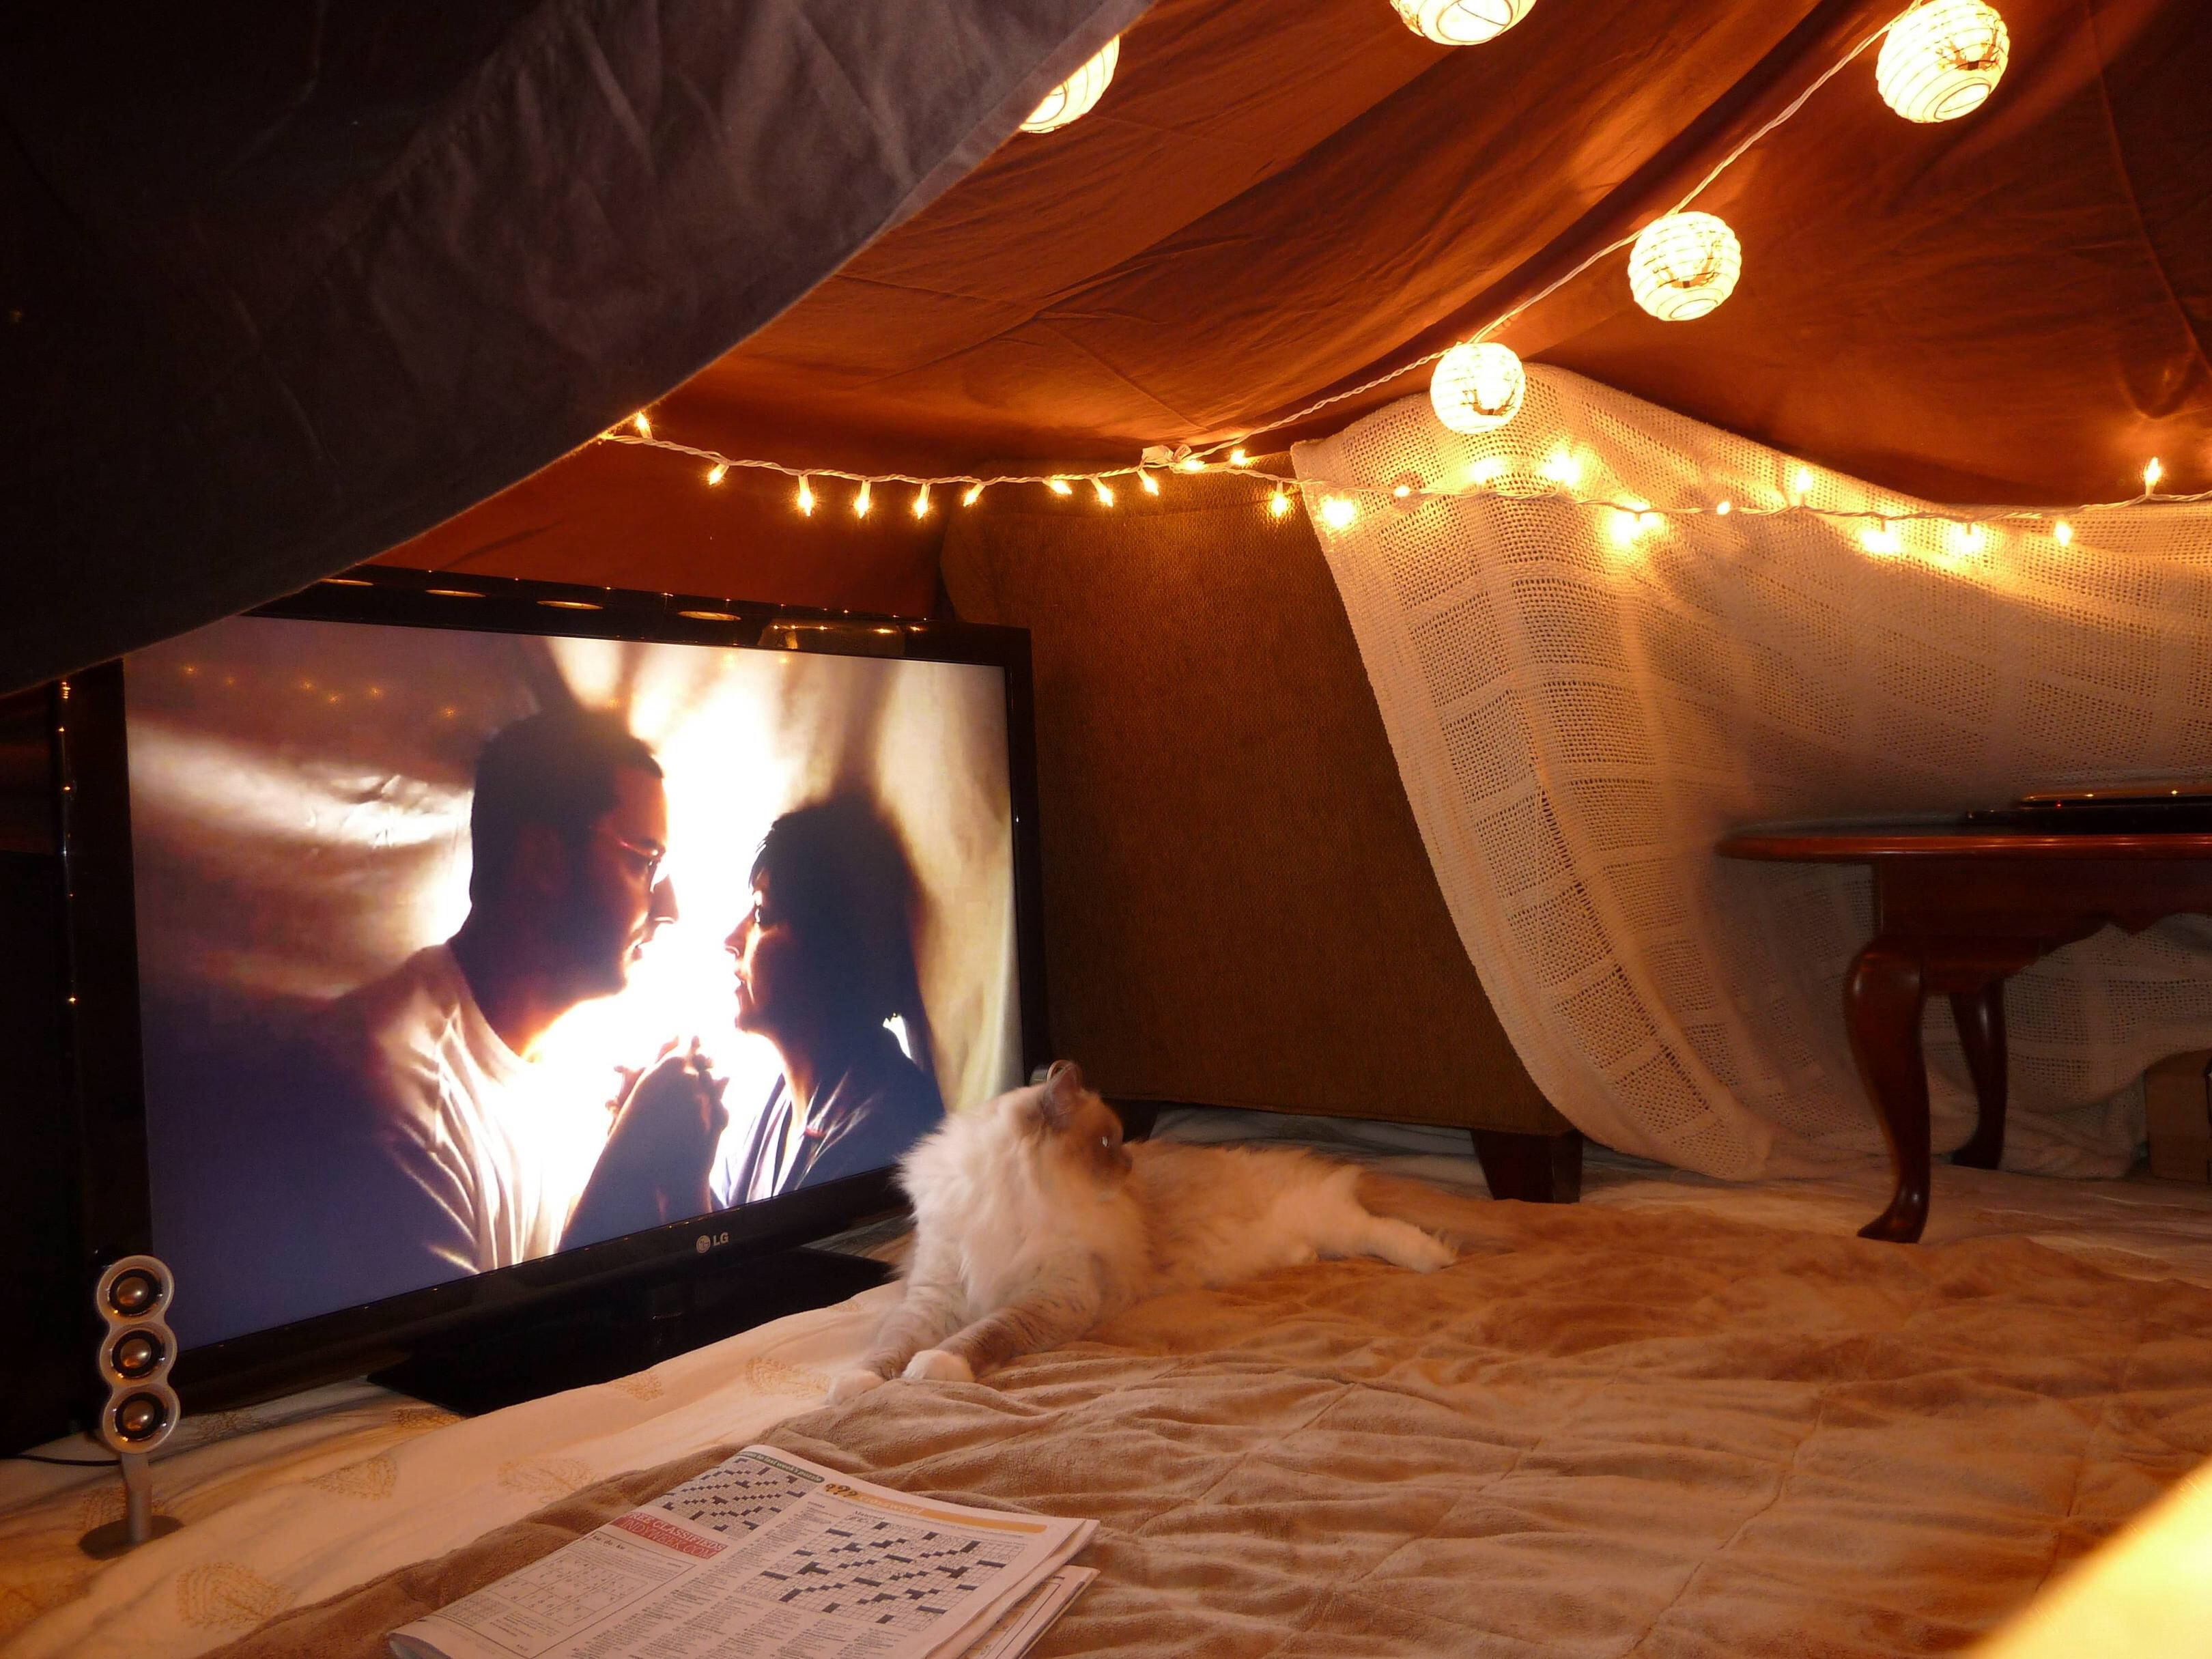 Me And My Husbands Favorite Thing To Do On A Saturday Nightliving Room Fort Nights Complete With Video Games Movies Finger Foods